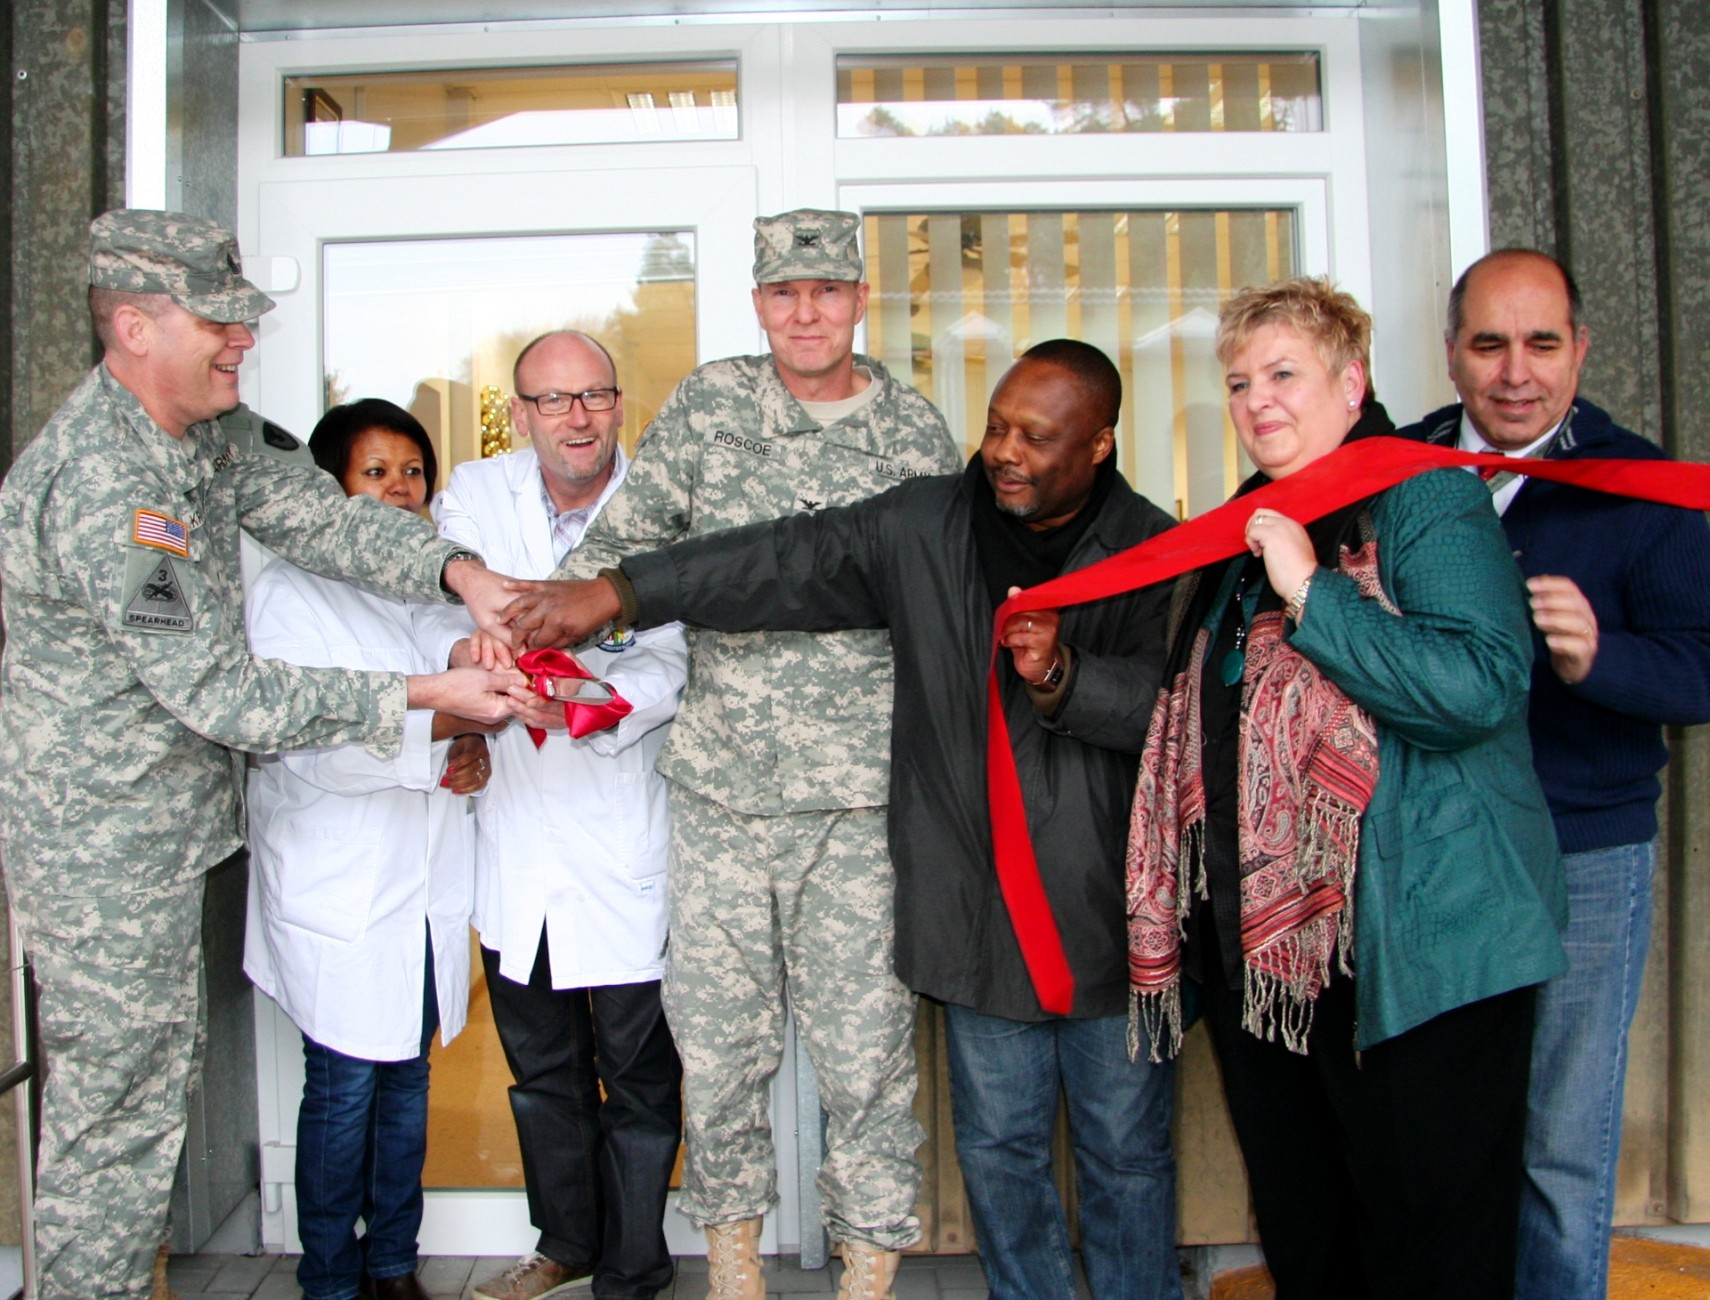 405th Afsb Hosts Grand Opening Of Army Oil Analysis